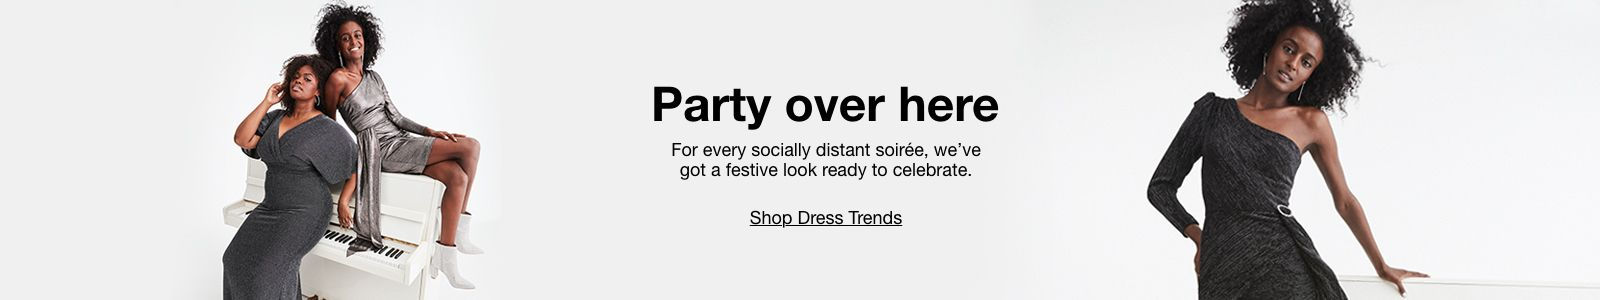 Party over here, Shop Dress Trends